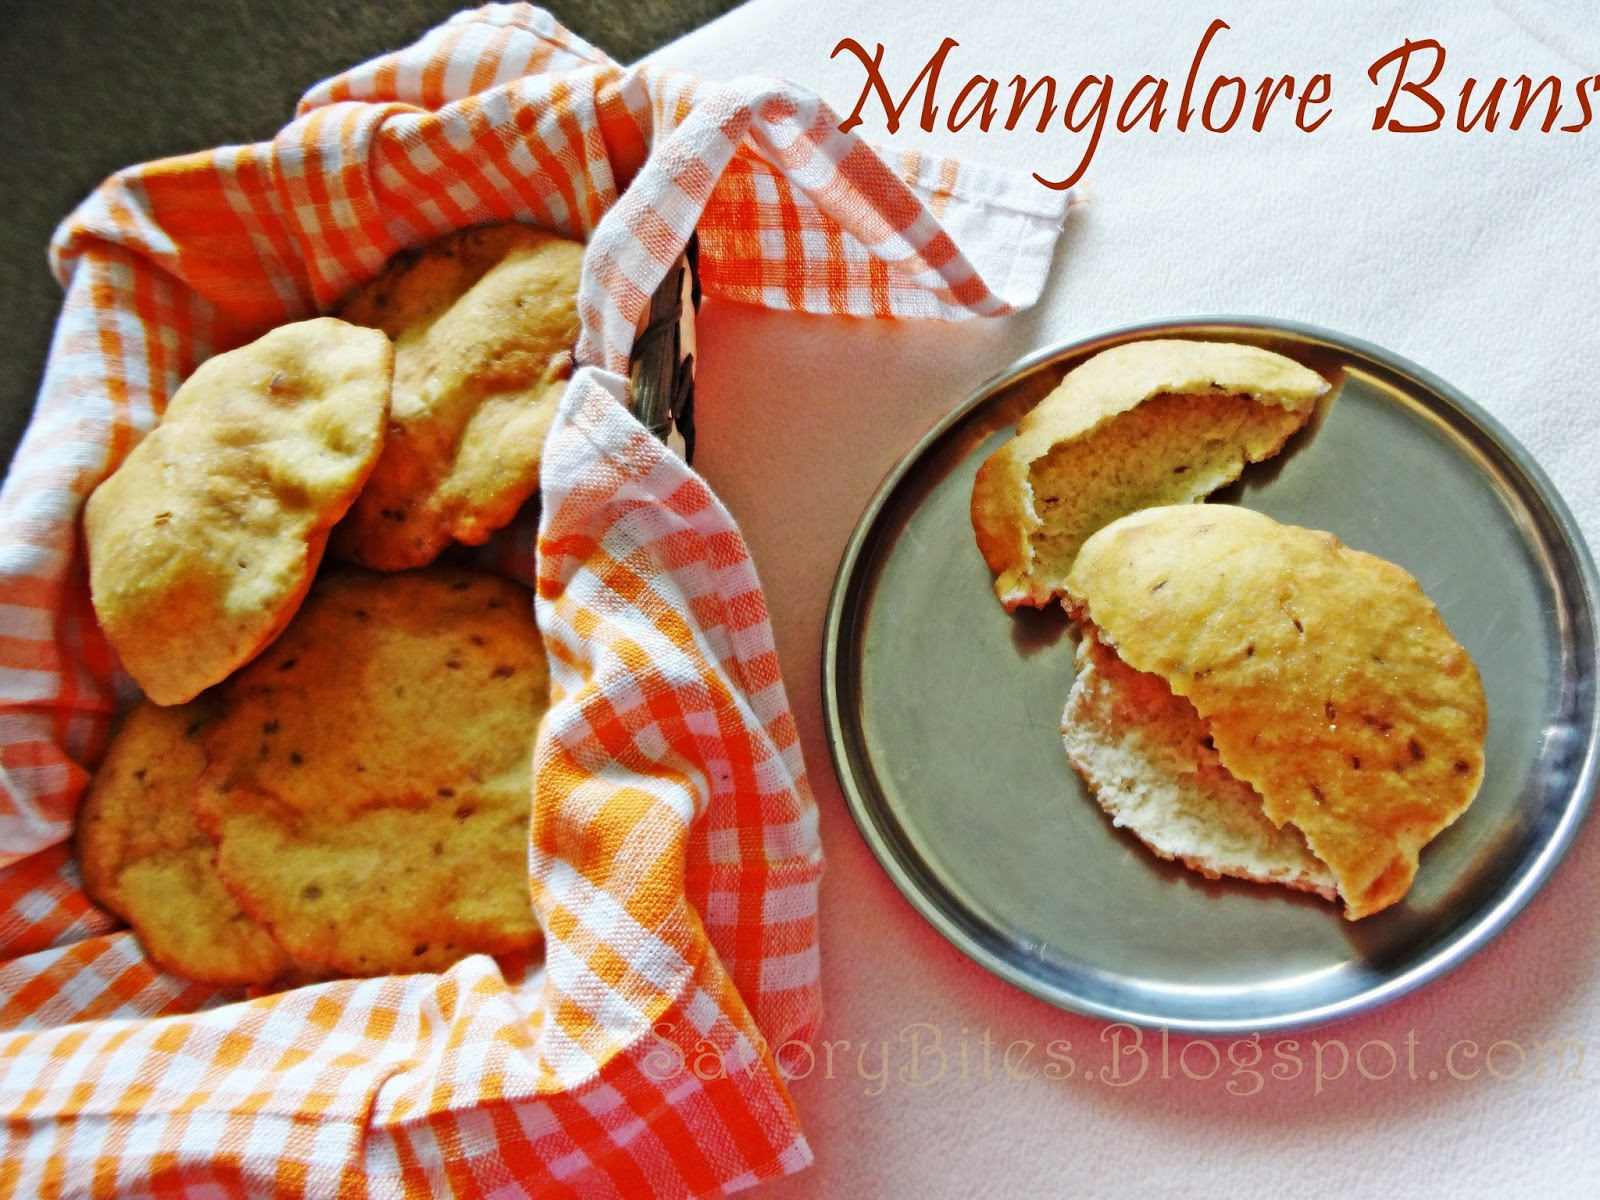 Mangalore Buns Vegetarian Snacks